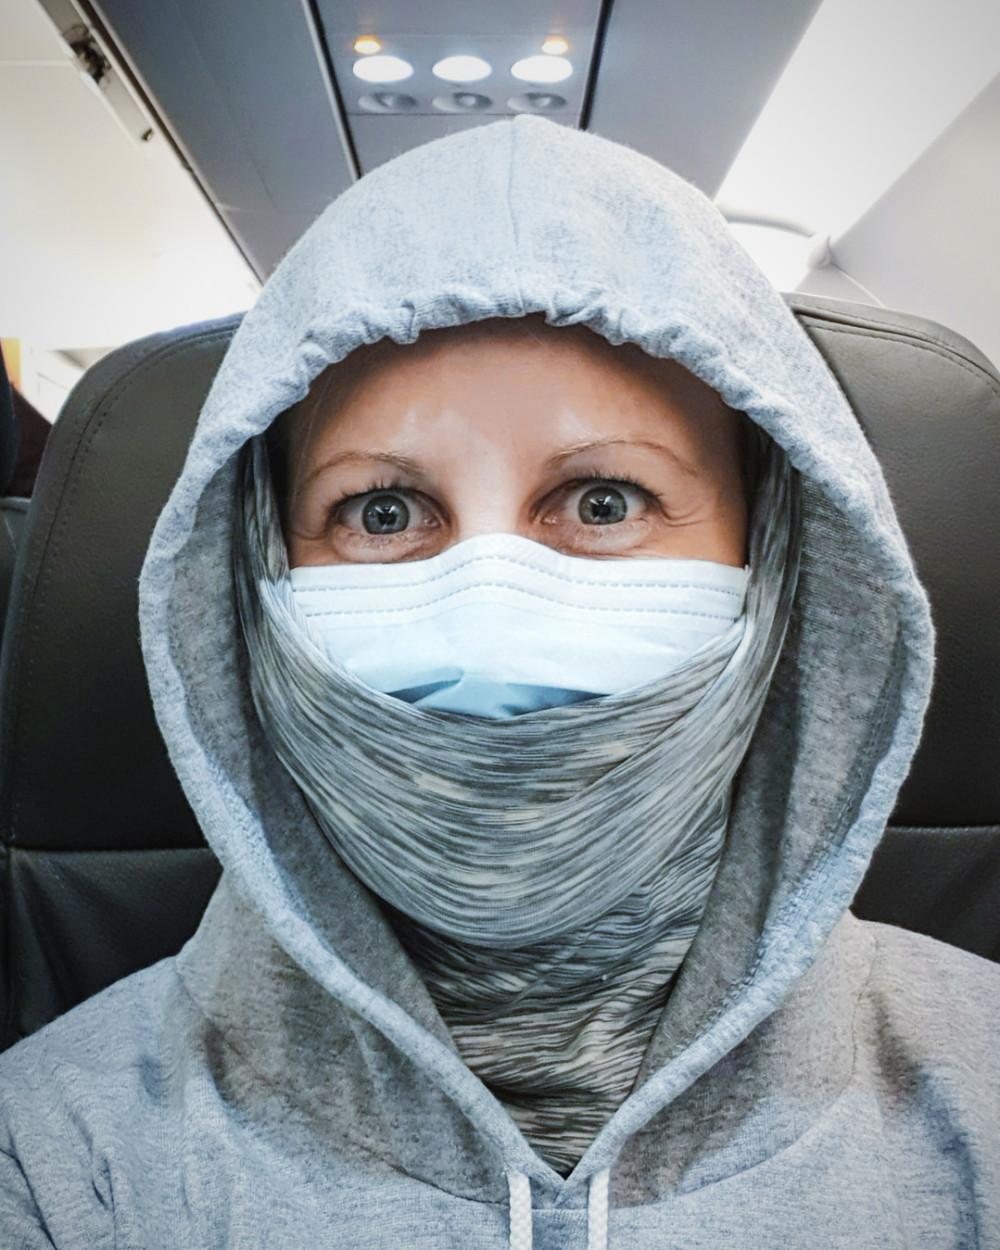 Should you travel with a face mask?